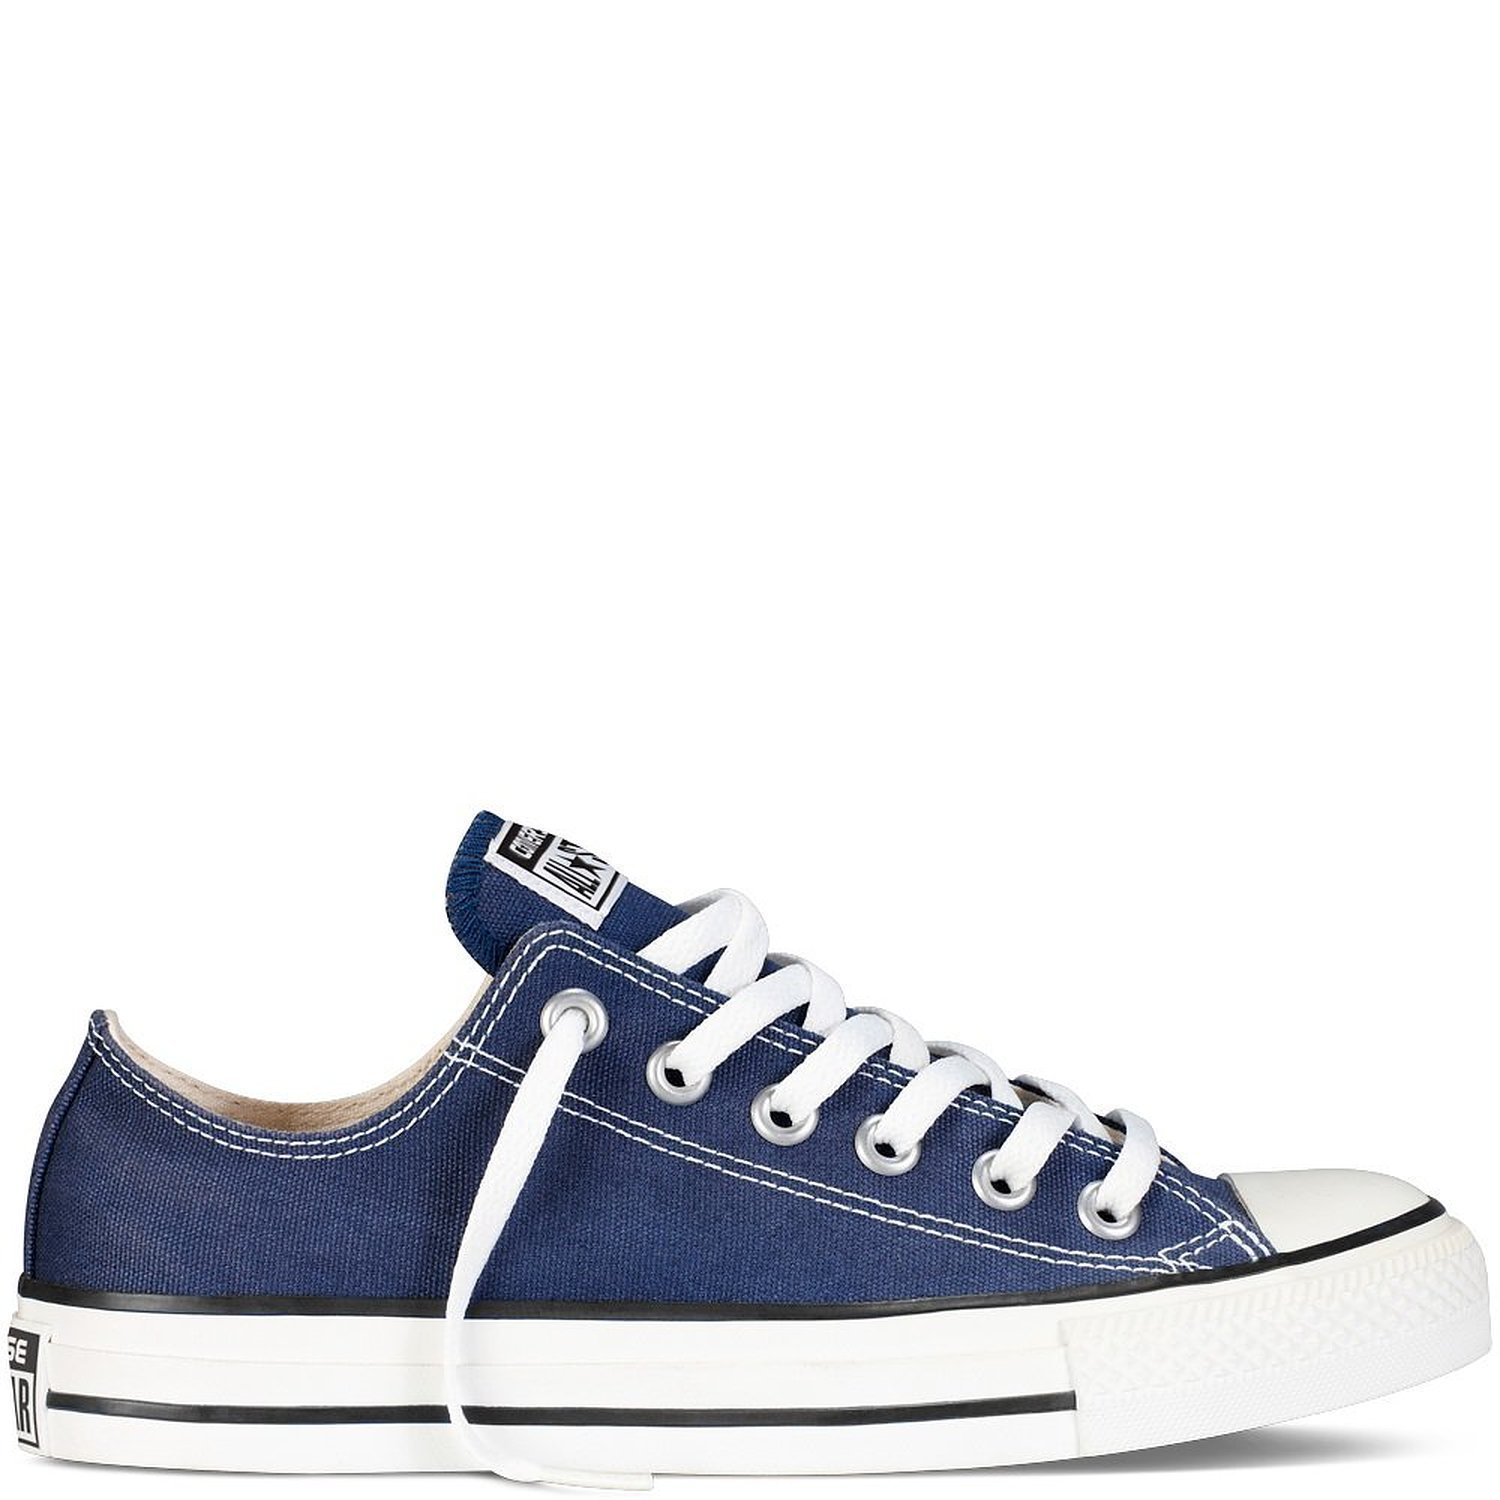 converse all star navy